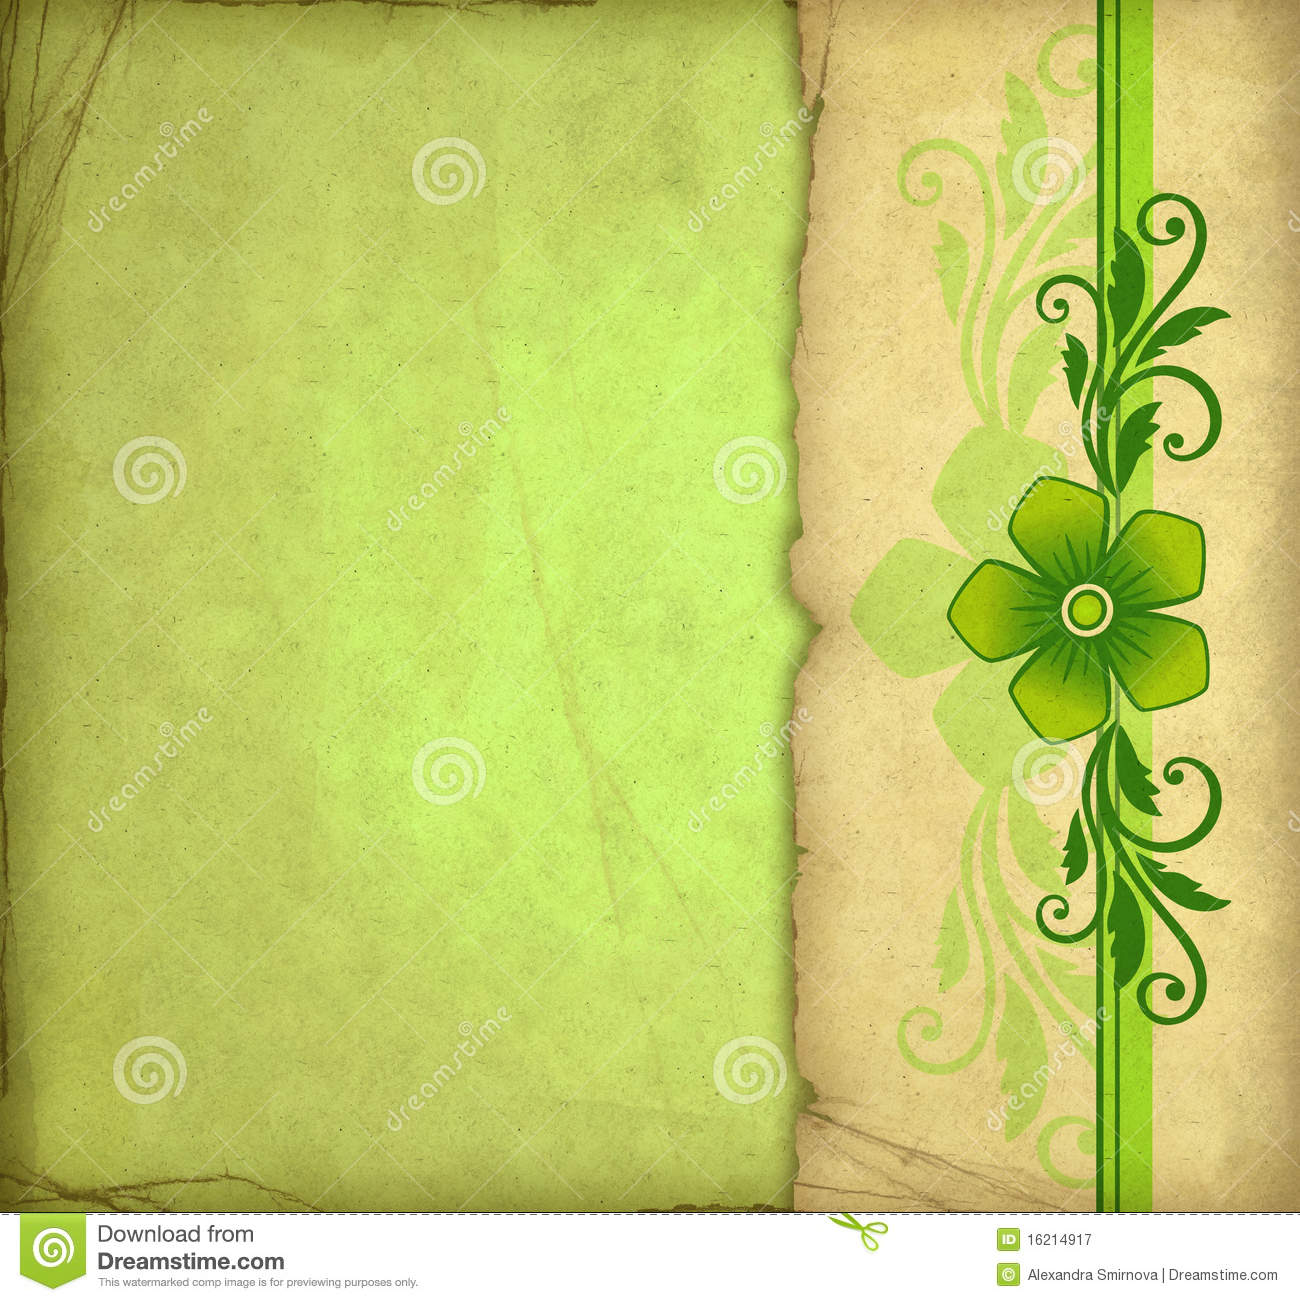 Scrapbook paper as wallpaper - Vintage Green Background Royalty Free Stock Photography